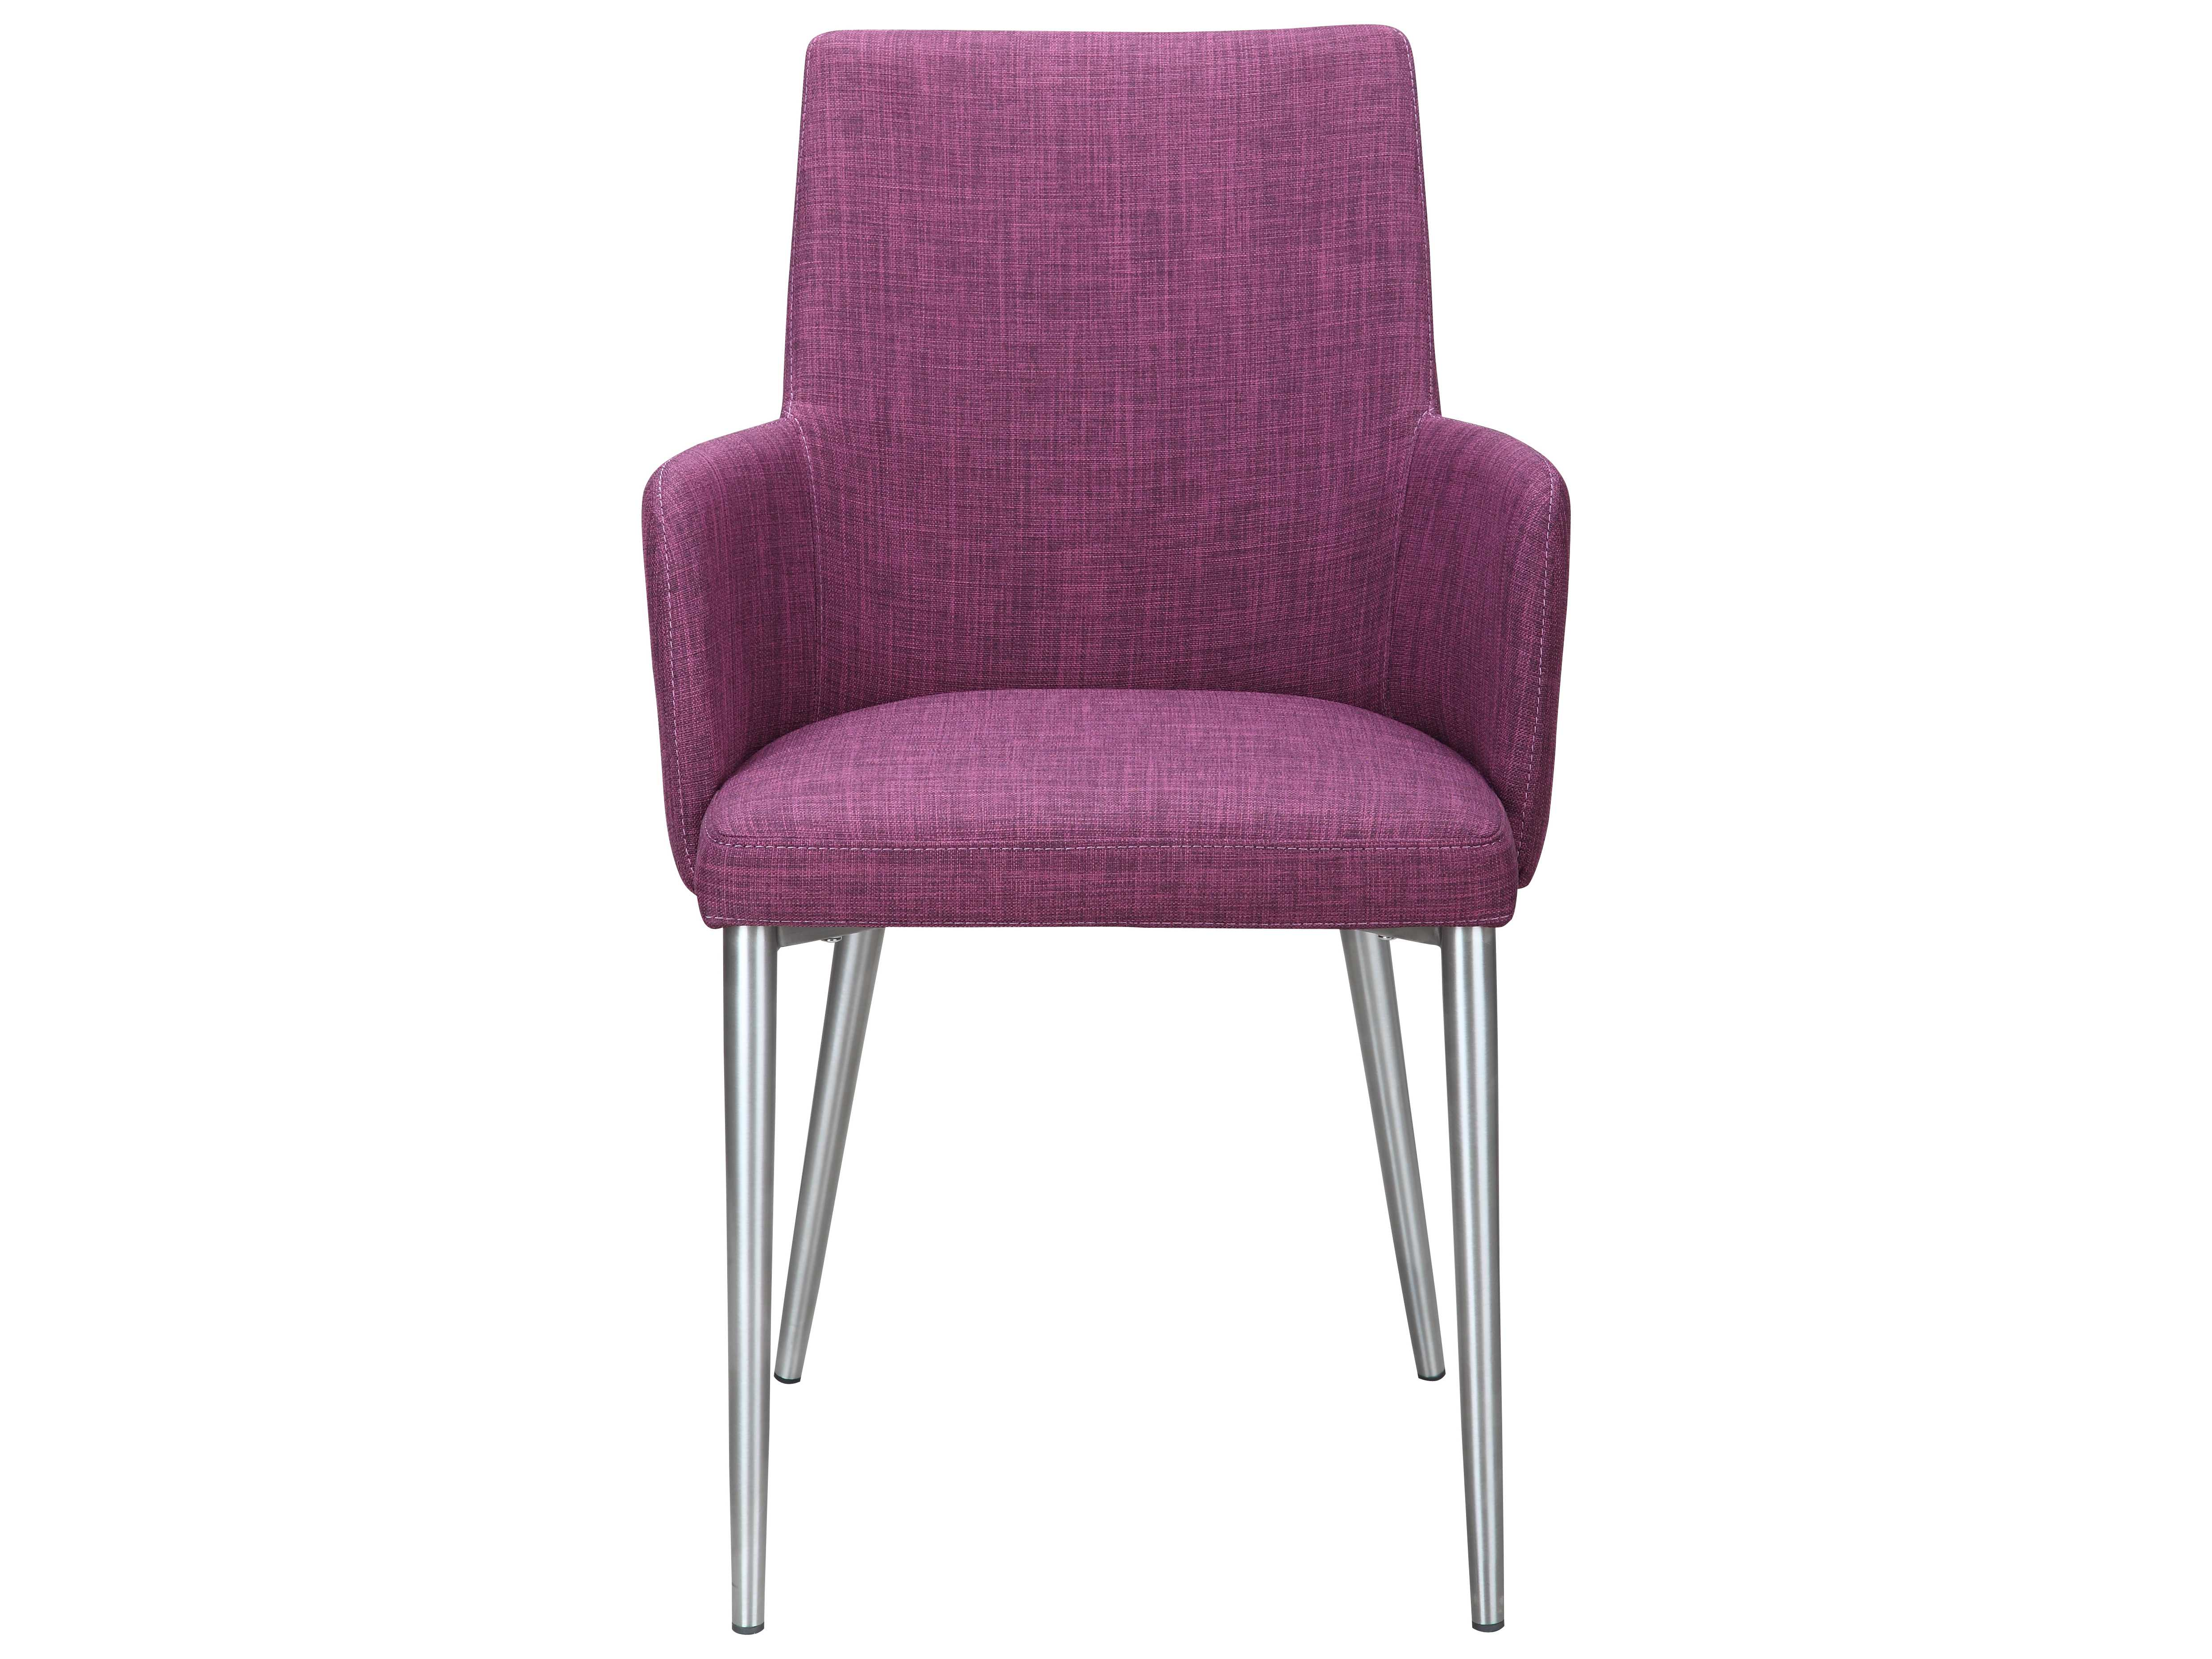 moe 39 s home collection flavia arm purple dining chair. Black Bedroom Furniture Sets. Home Design Ideas